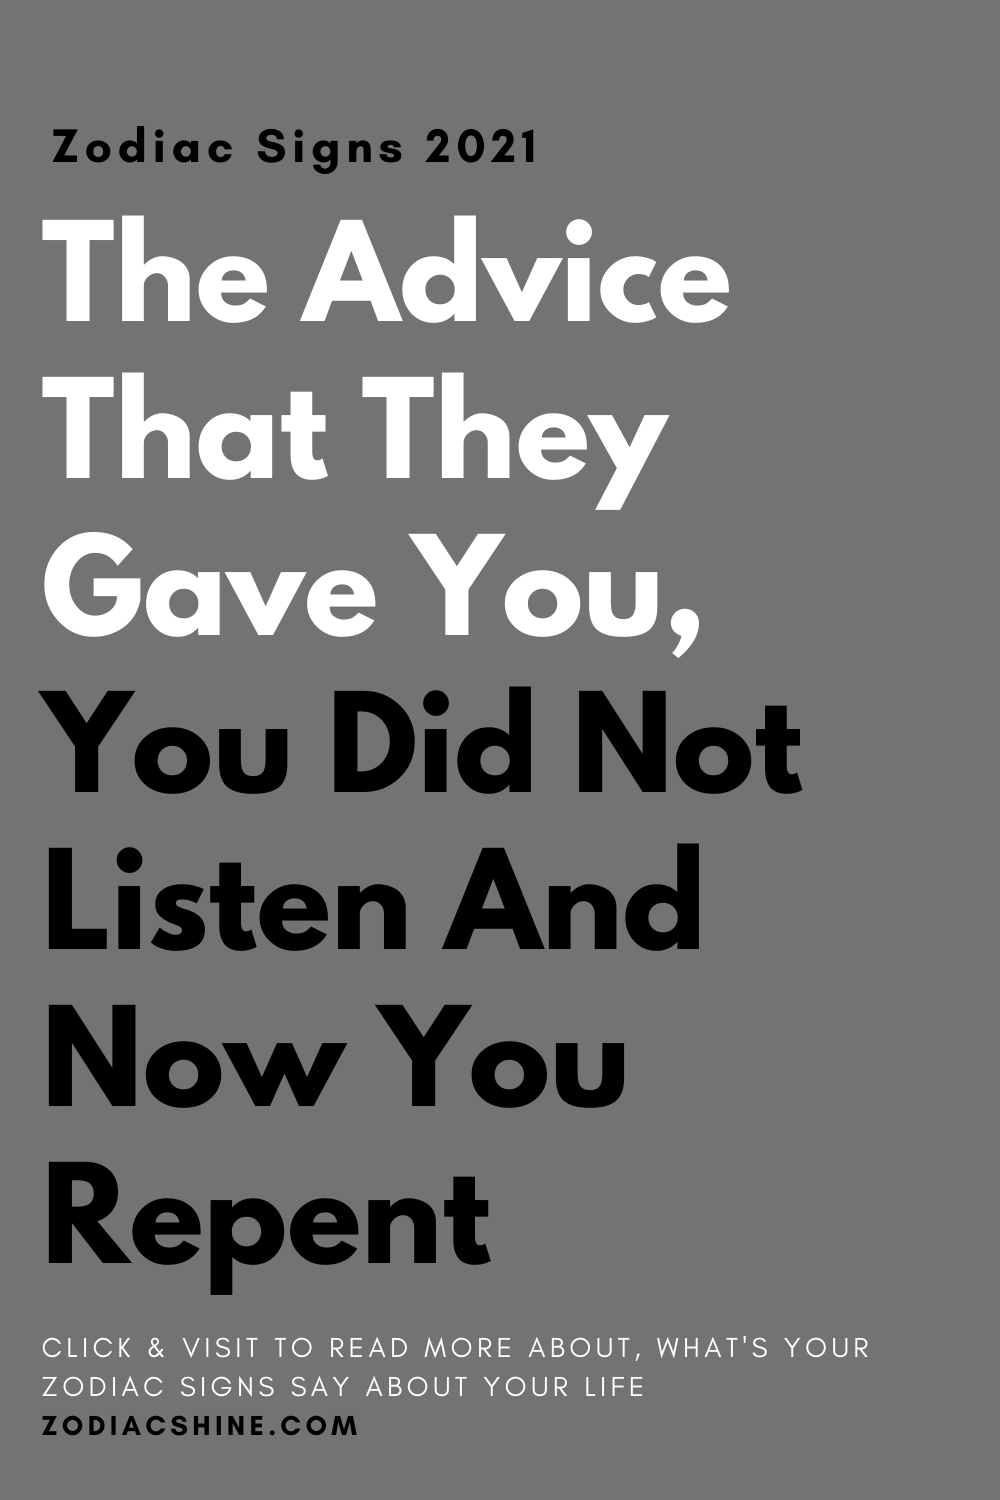 The Advice That They Gave You, You Did Not Listen And Now You Repent